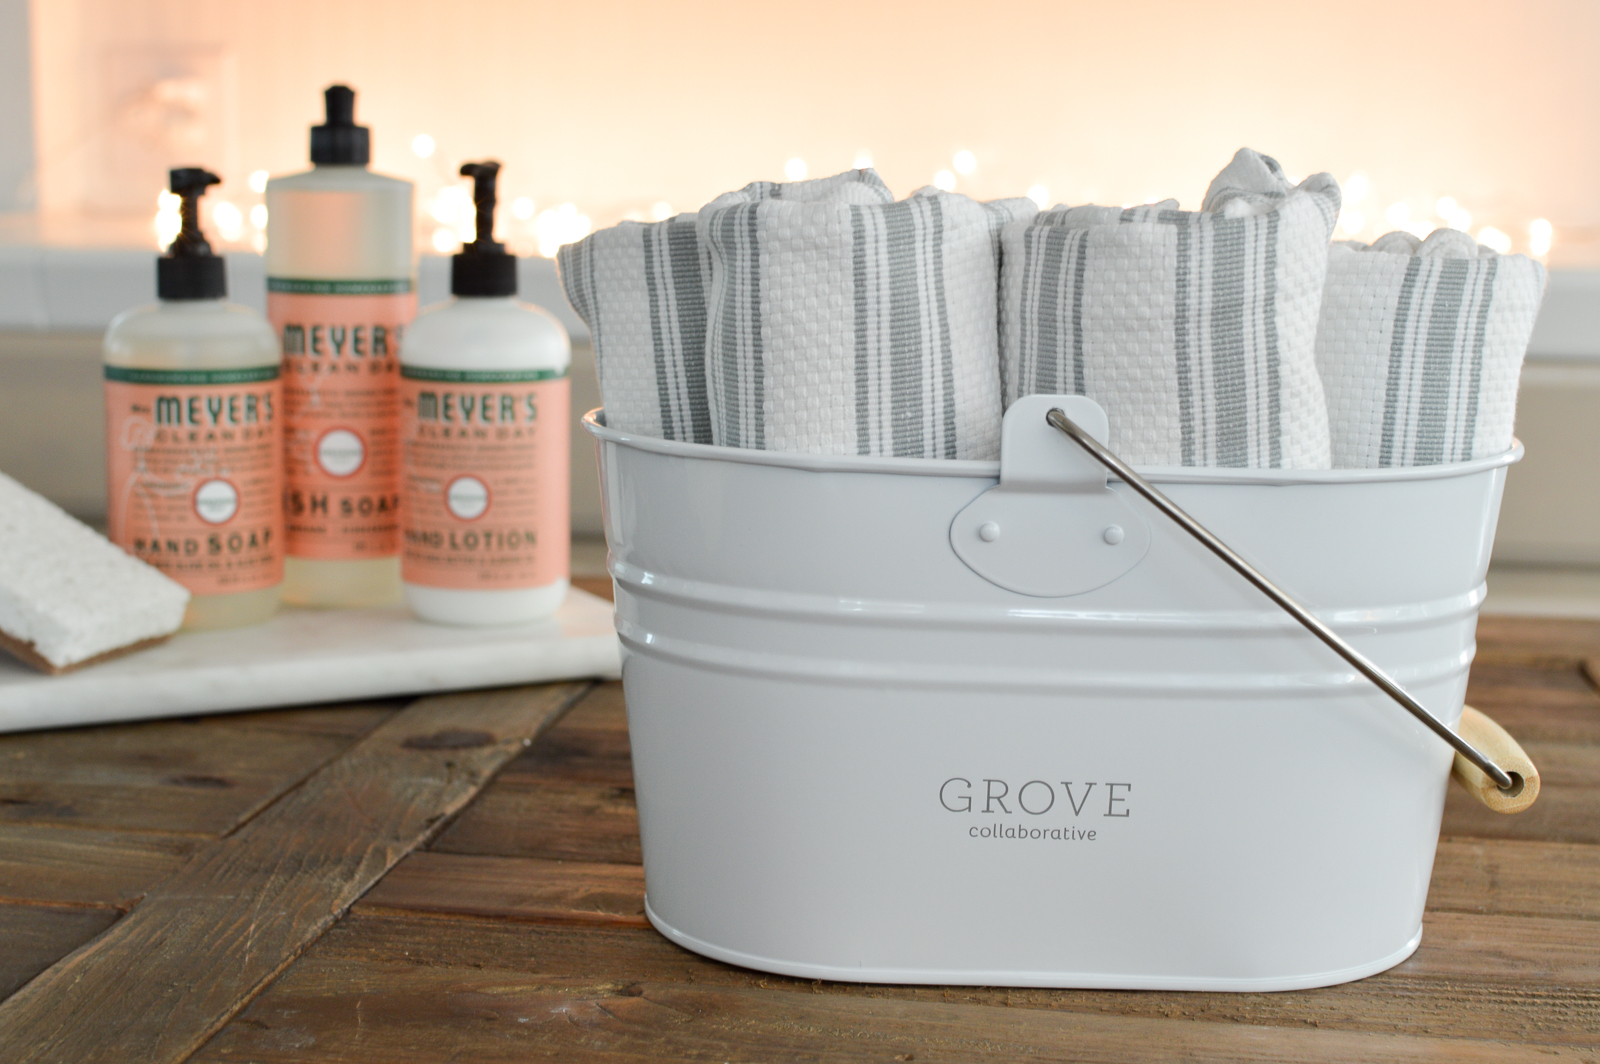 FREE Mrs Meyers Organizing Cleaning Caddy Set - DETAILS at www.foxhollowcottage.com #ad